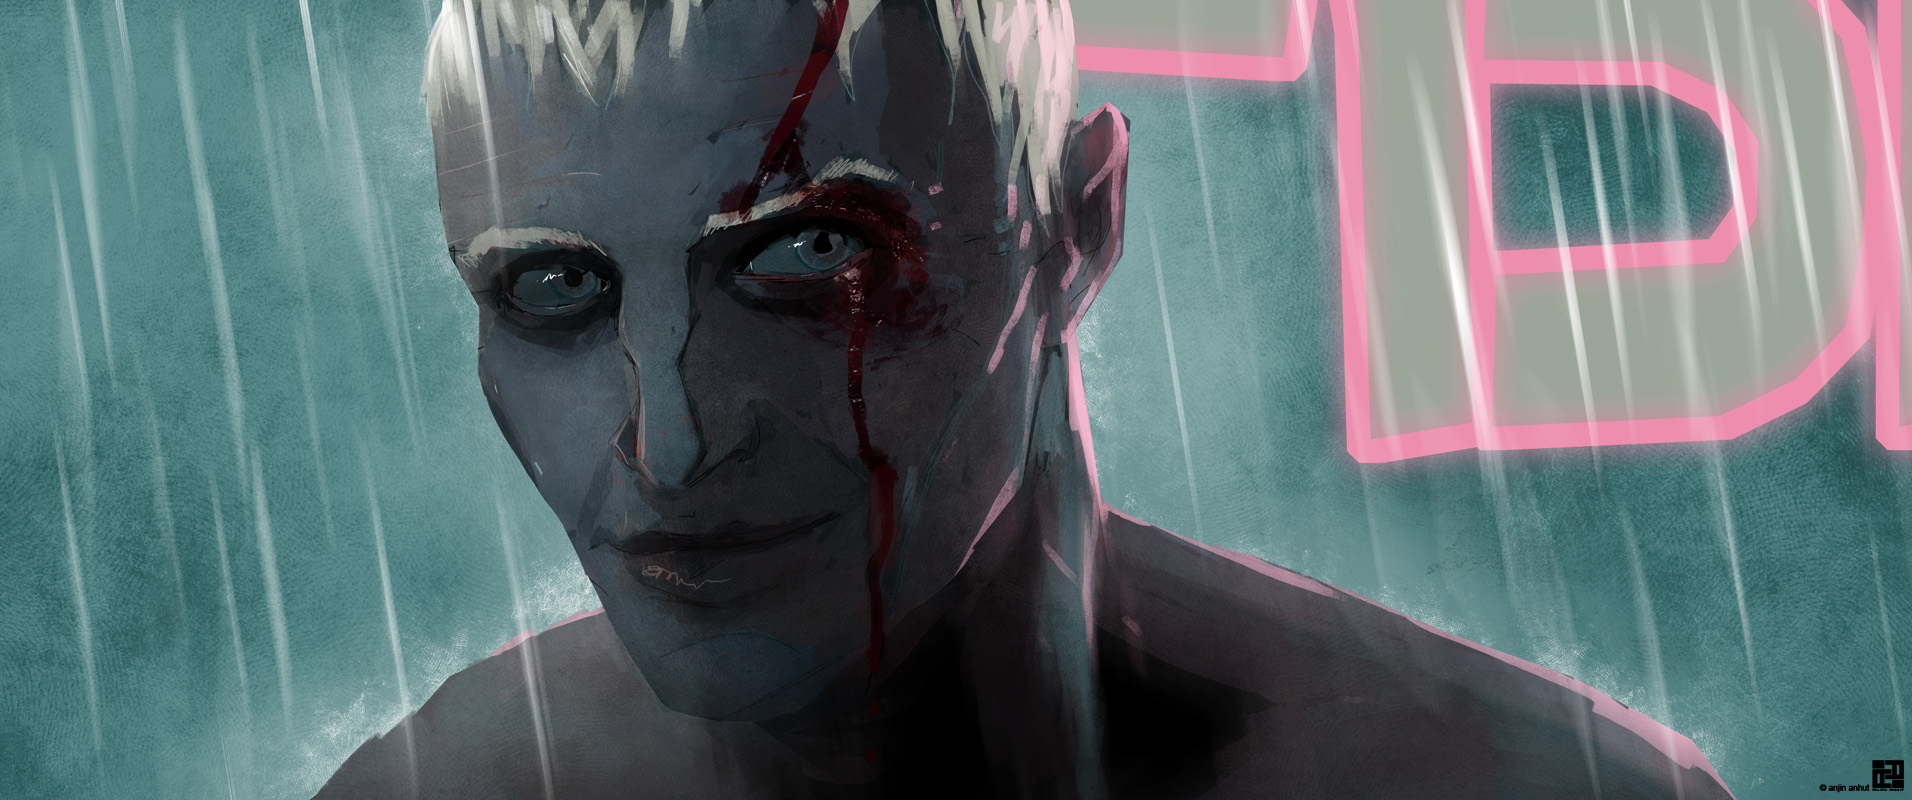 time to die, roy batty